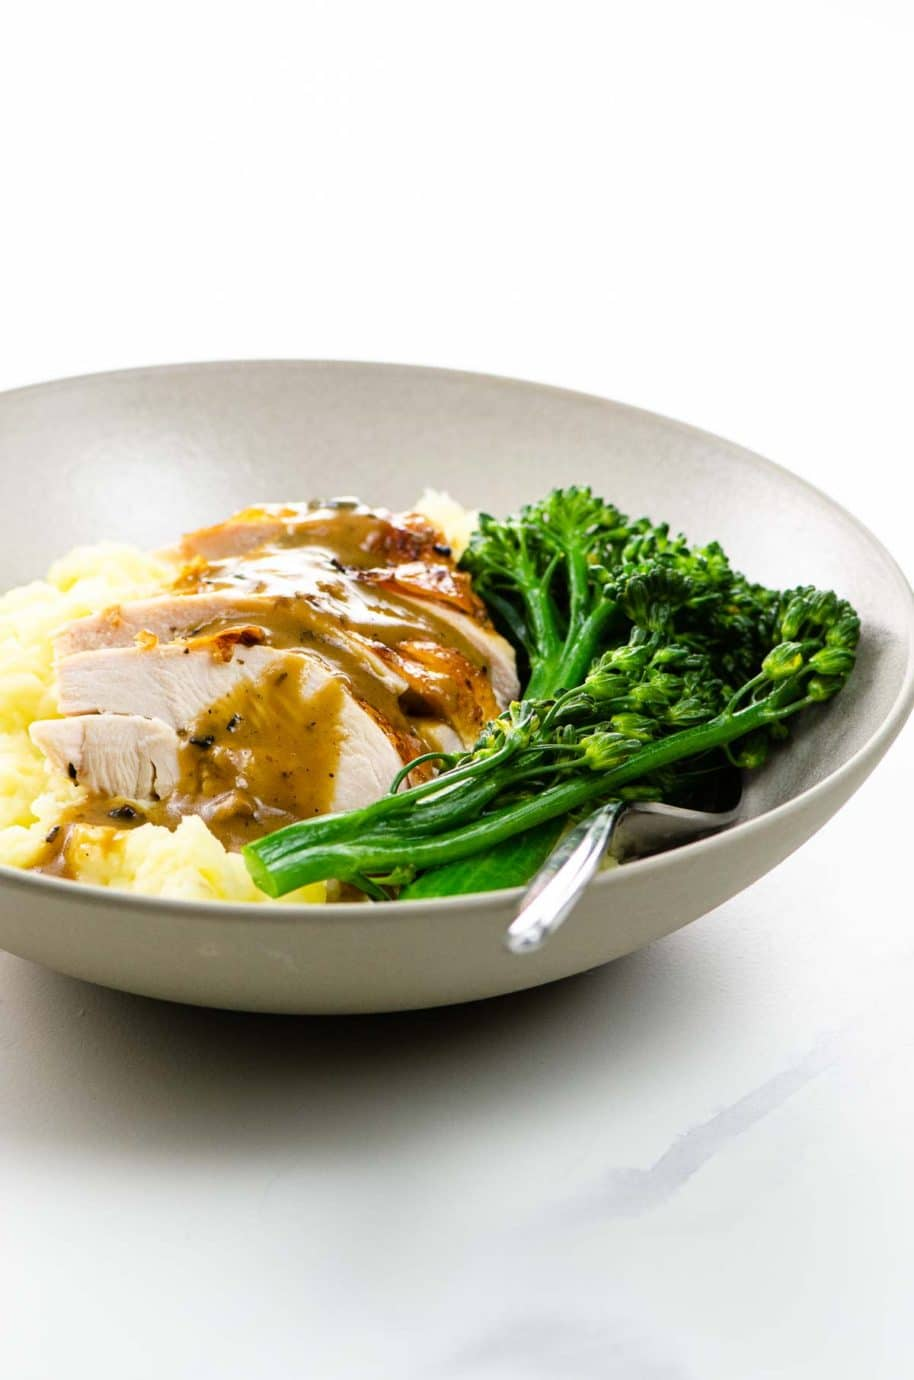 sliced spatchcock chicken breast with gravy over mashed potatoes with broccolini in a bowl